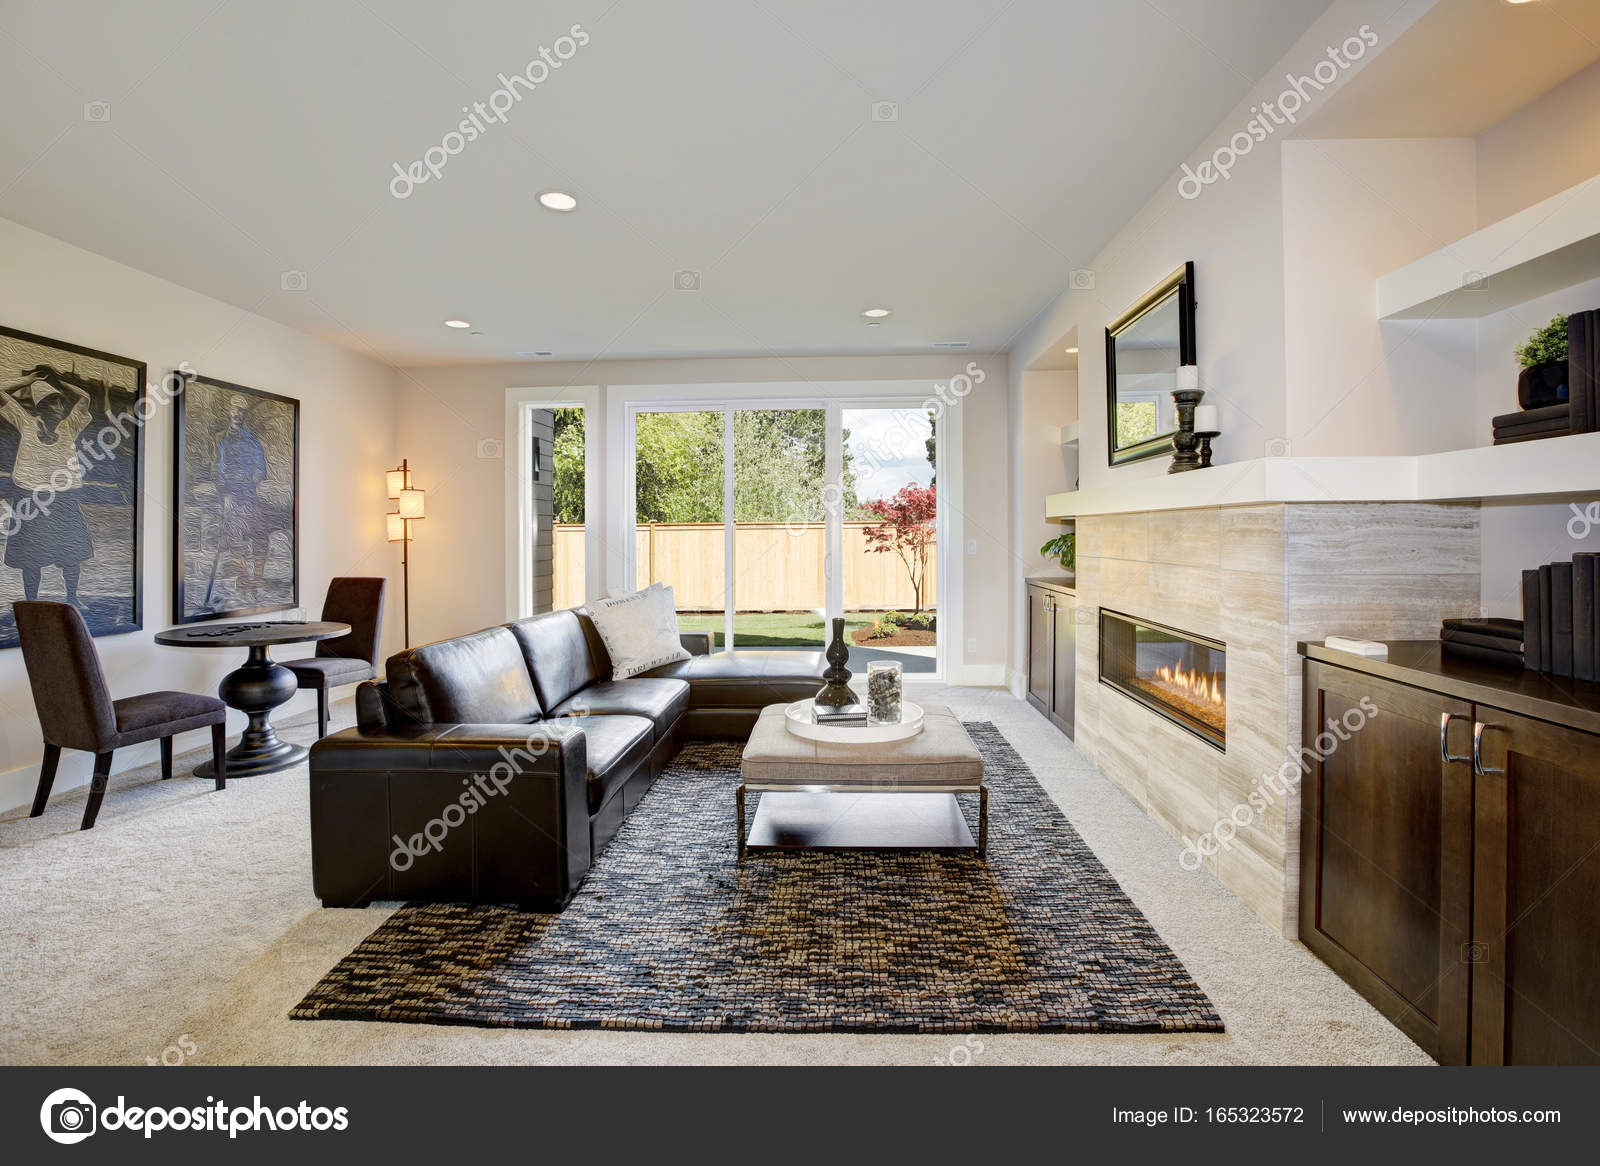 Remarkable Family Room Design With Wet Bar Nook Stock Photo Download Free Architecture Designs Scobabritishbridgeorg